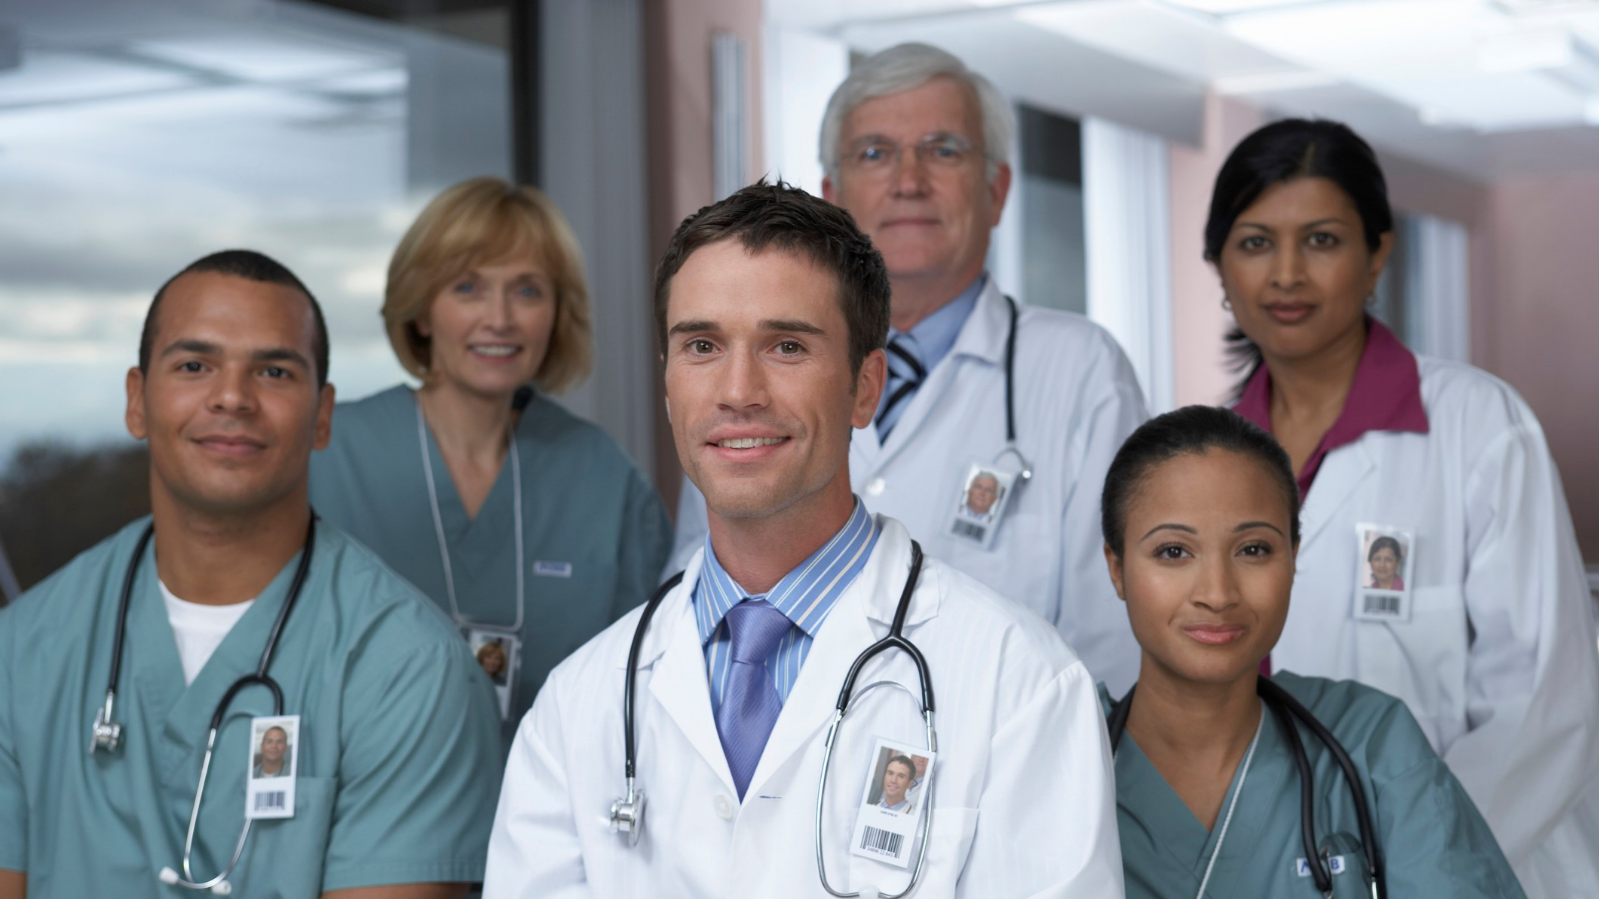 Support Our Healthcare Heroes